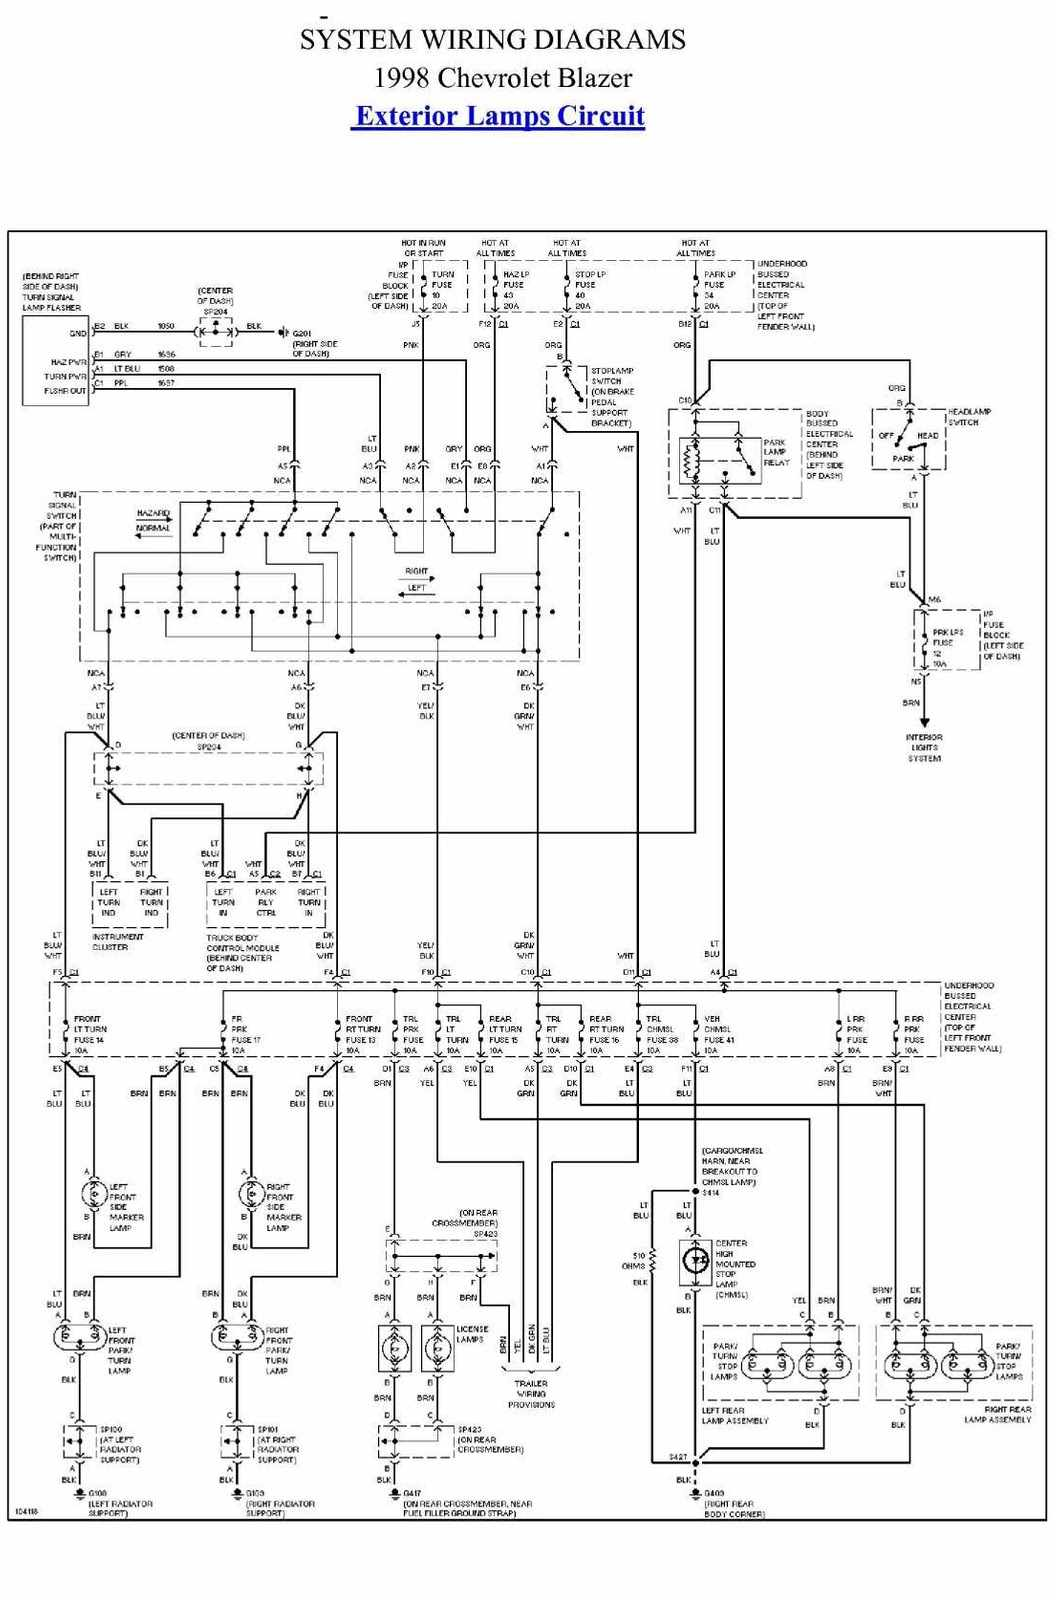 Exterior Lamp Circuit Diagram Of Chevrolet Blazer on 2004 Chevy Cavalier Parts Diagram